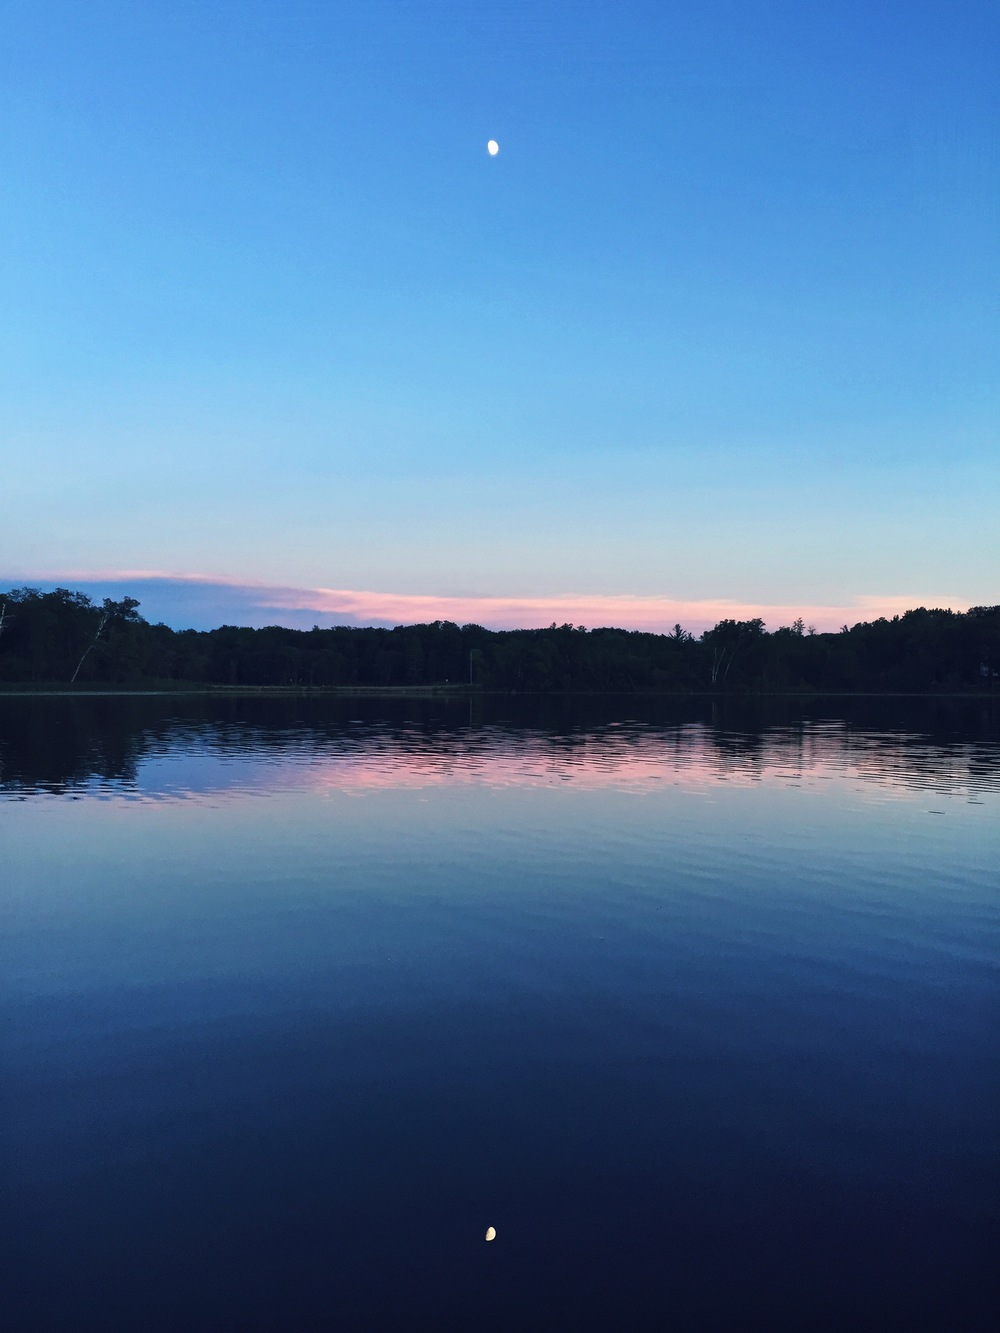 We took the canoe or the paddleboat out every night, and one night, we were given this view... Minnesota, you're stunning.